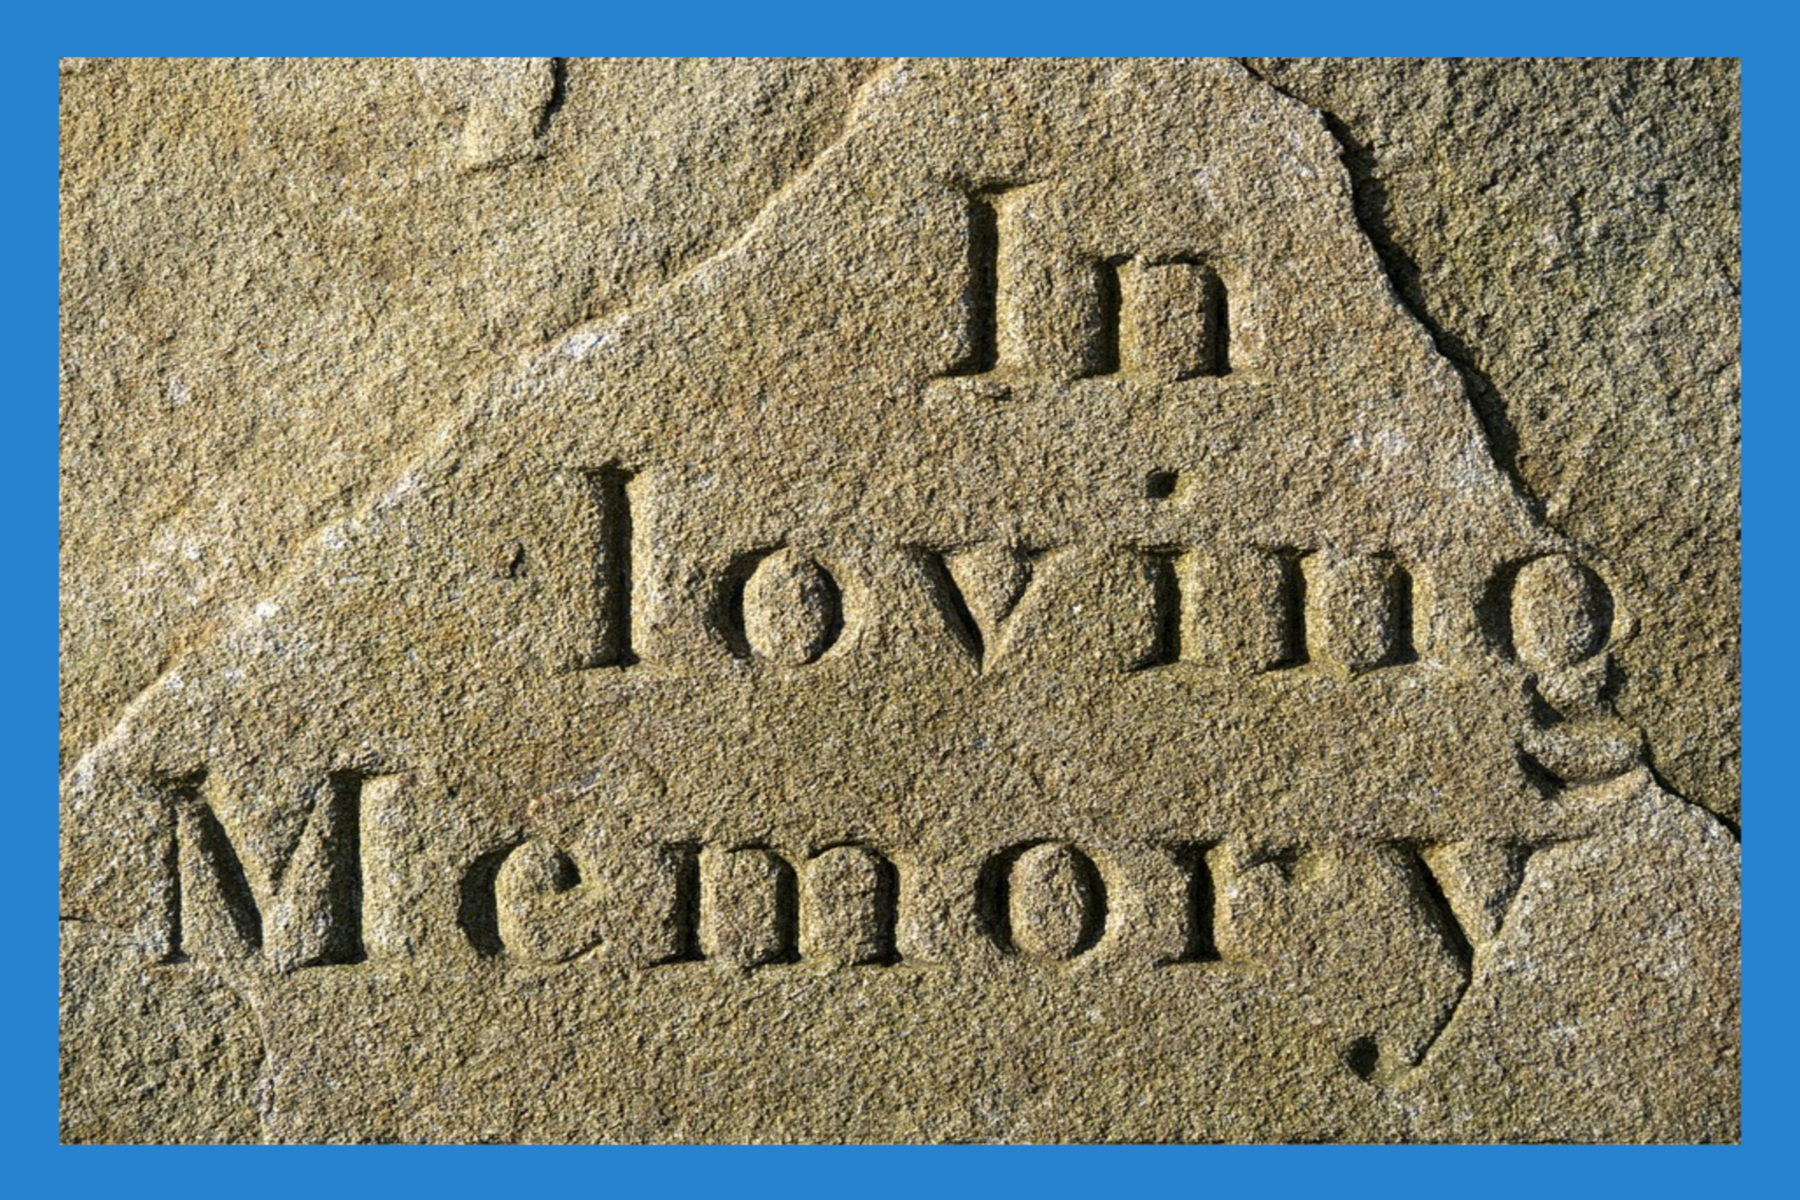 cemetery, gravestone, BillionGraves, ancestors, ancestry, family history, BillionGraves, genealogy, family, in loving memory